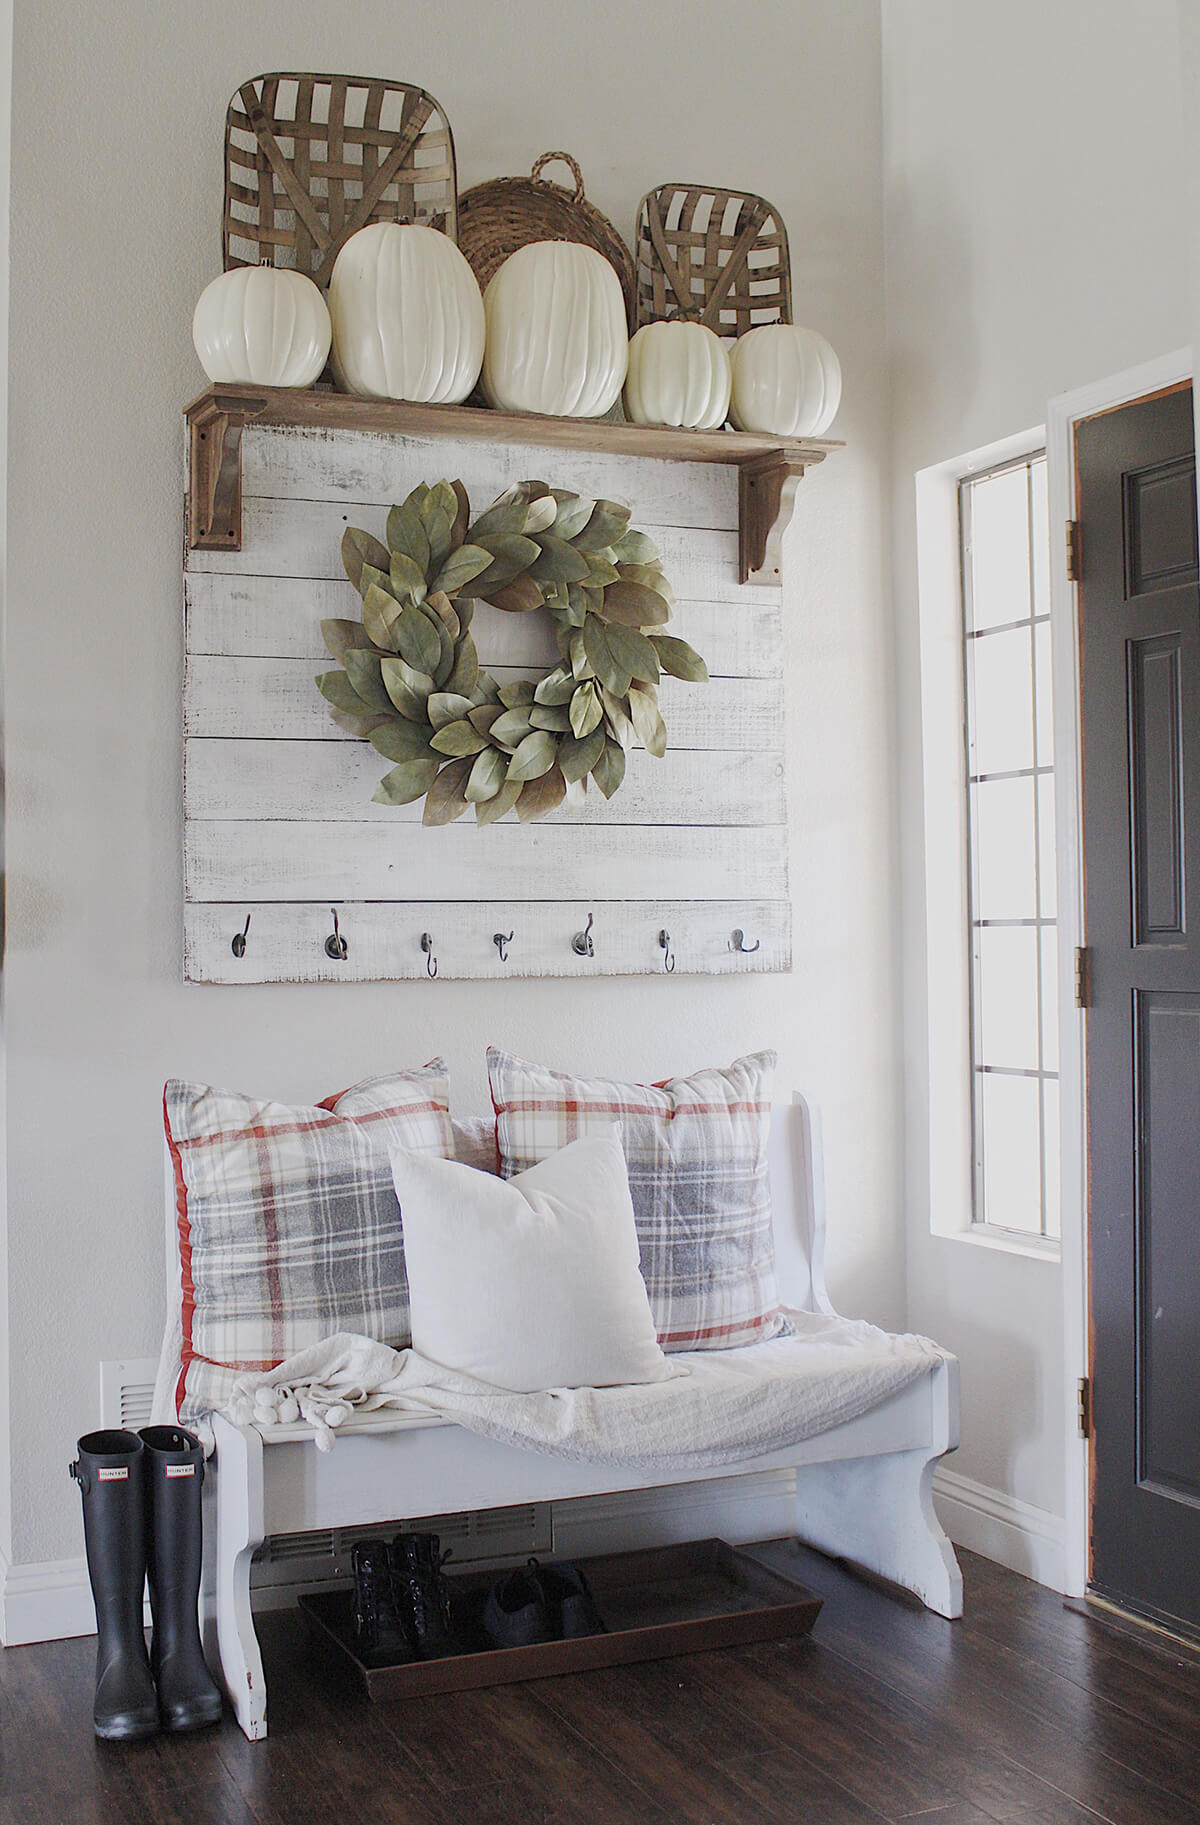 Mounted Wreath and Plaid Pillows in Pastels